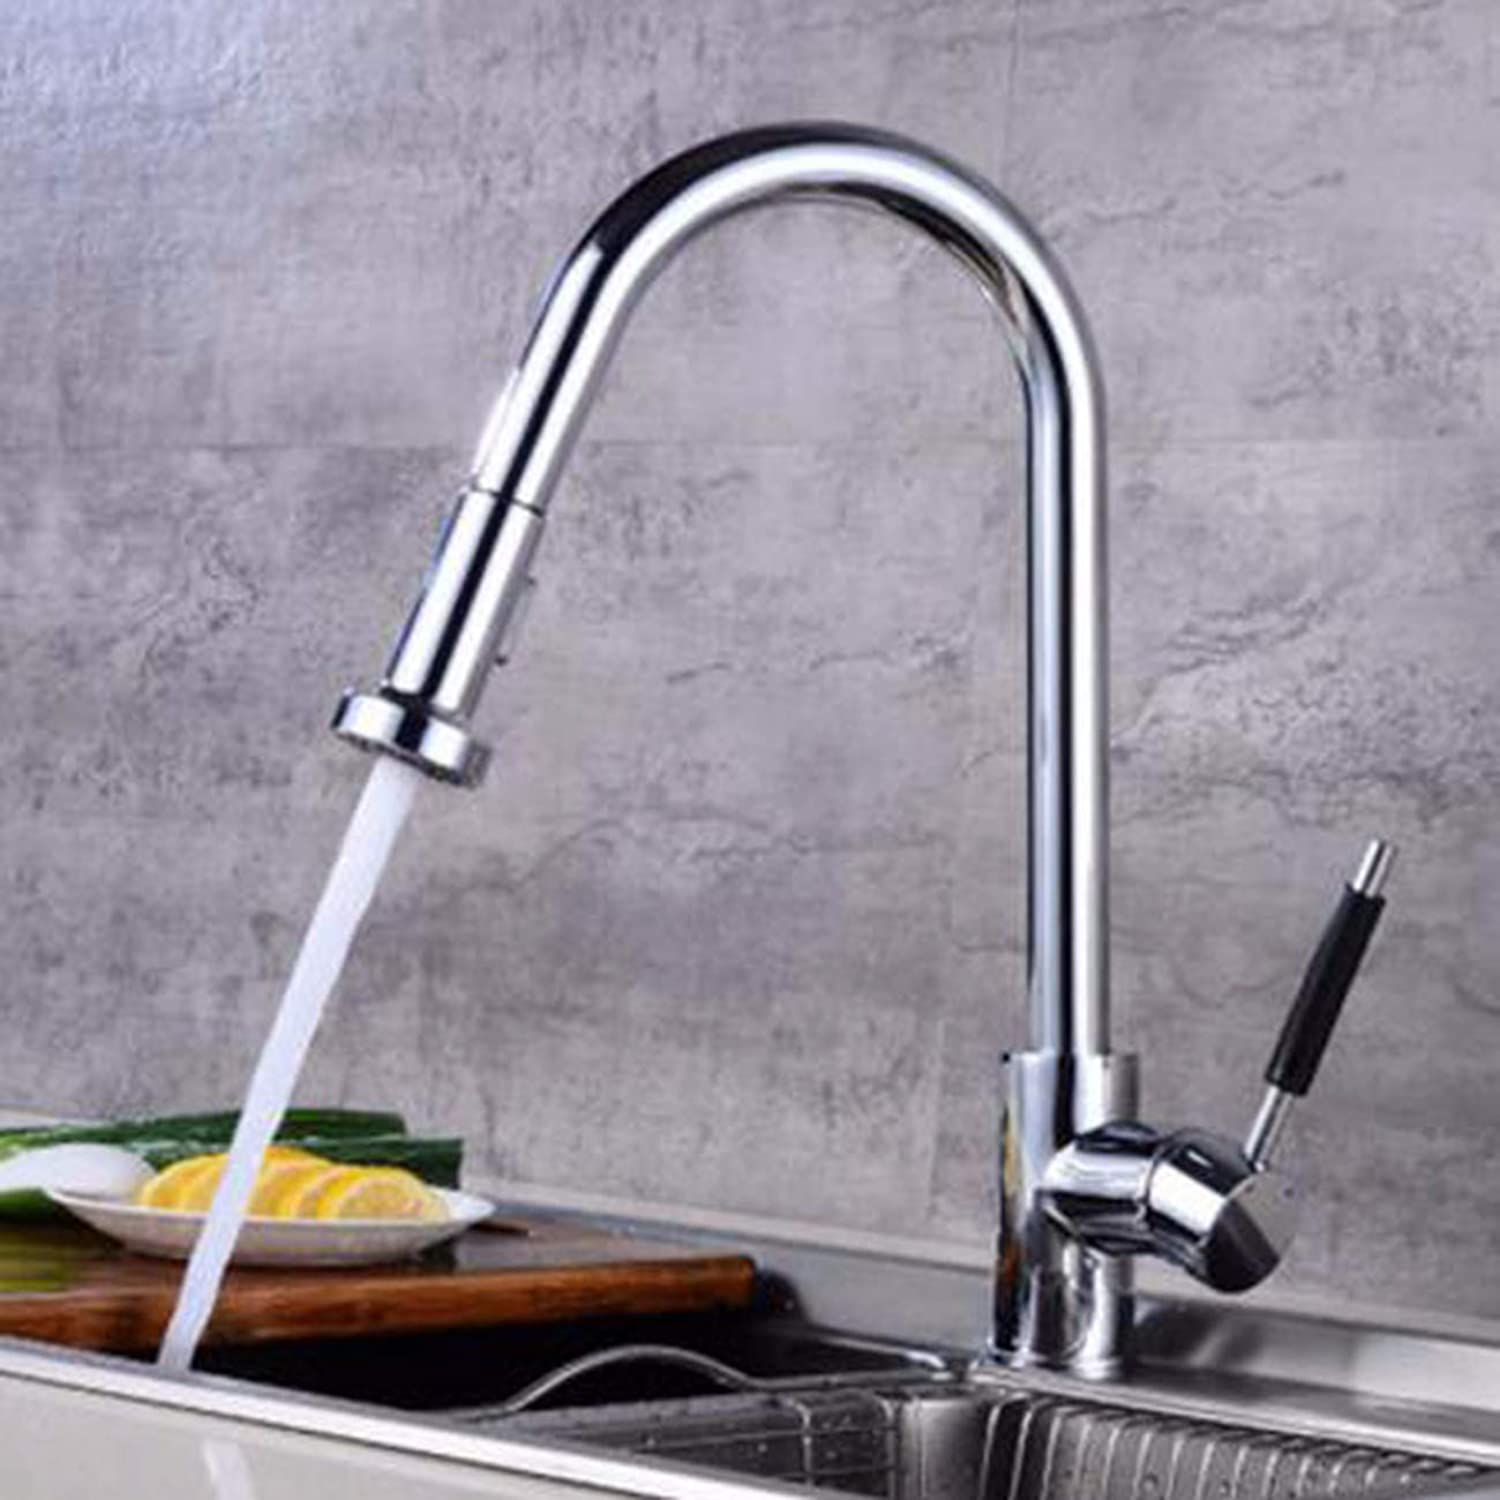 European Kitchen Faucet Flume Faucet Swivel Faucet Led Kitchen Hot And Cold Faucet